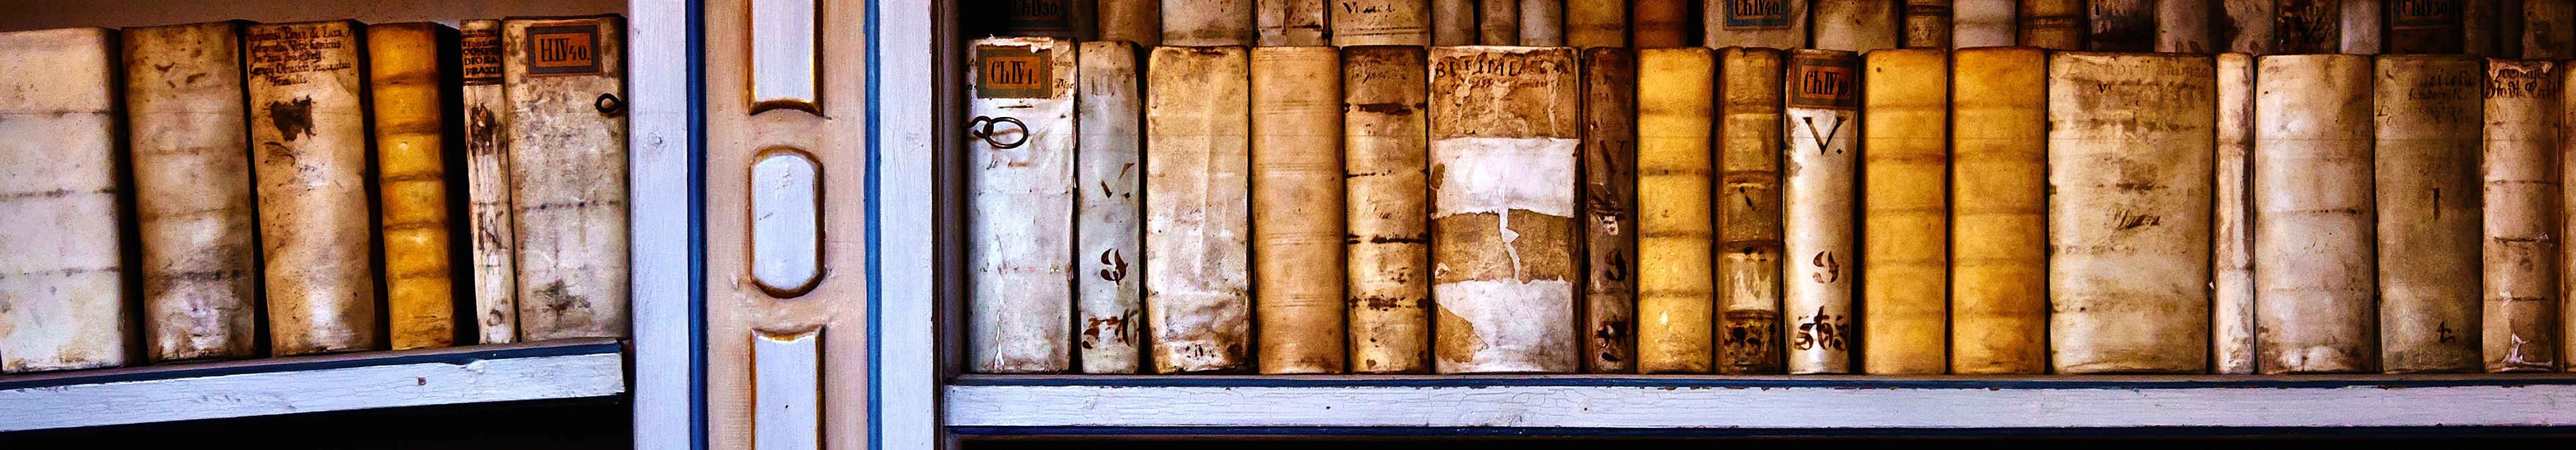 Shelf of old, weathered books